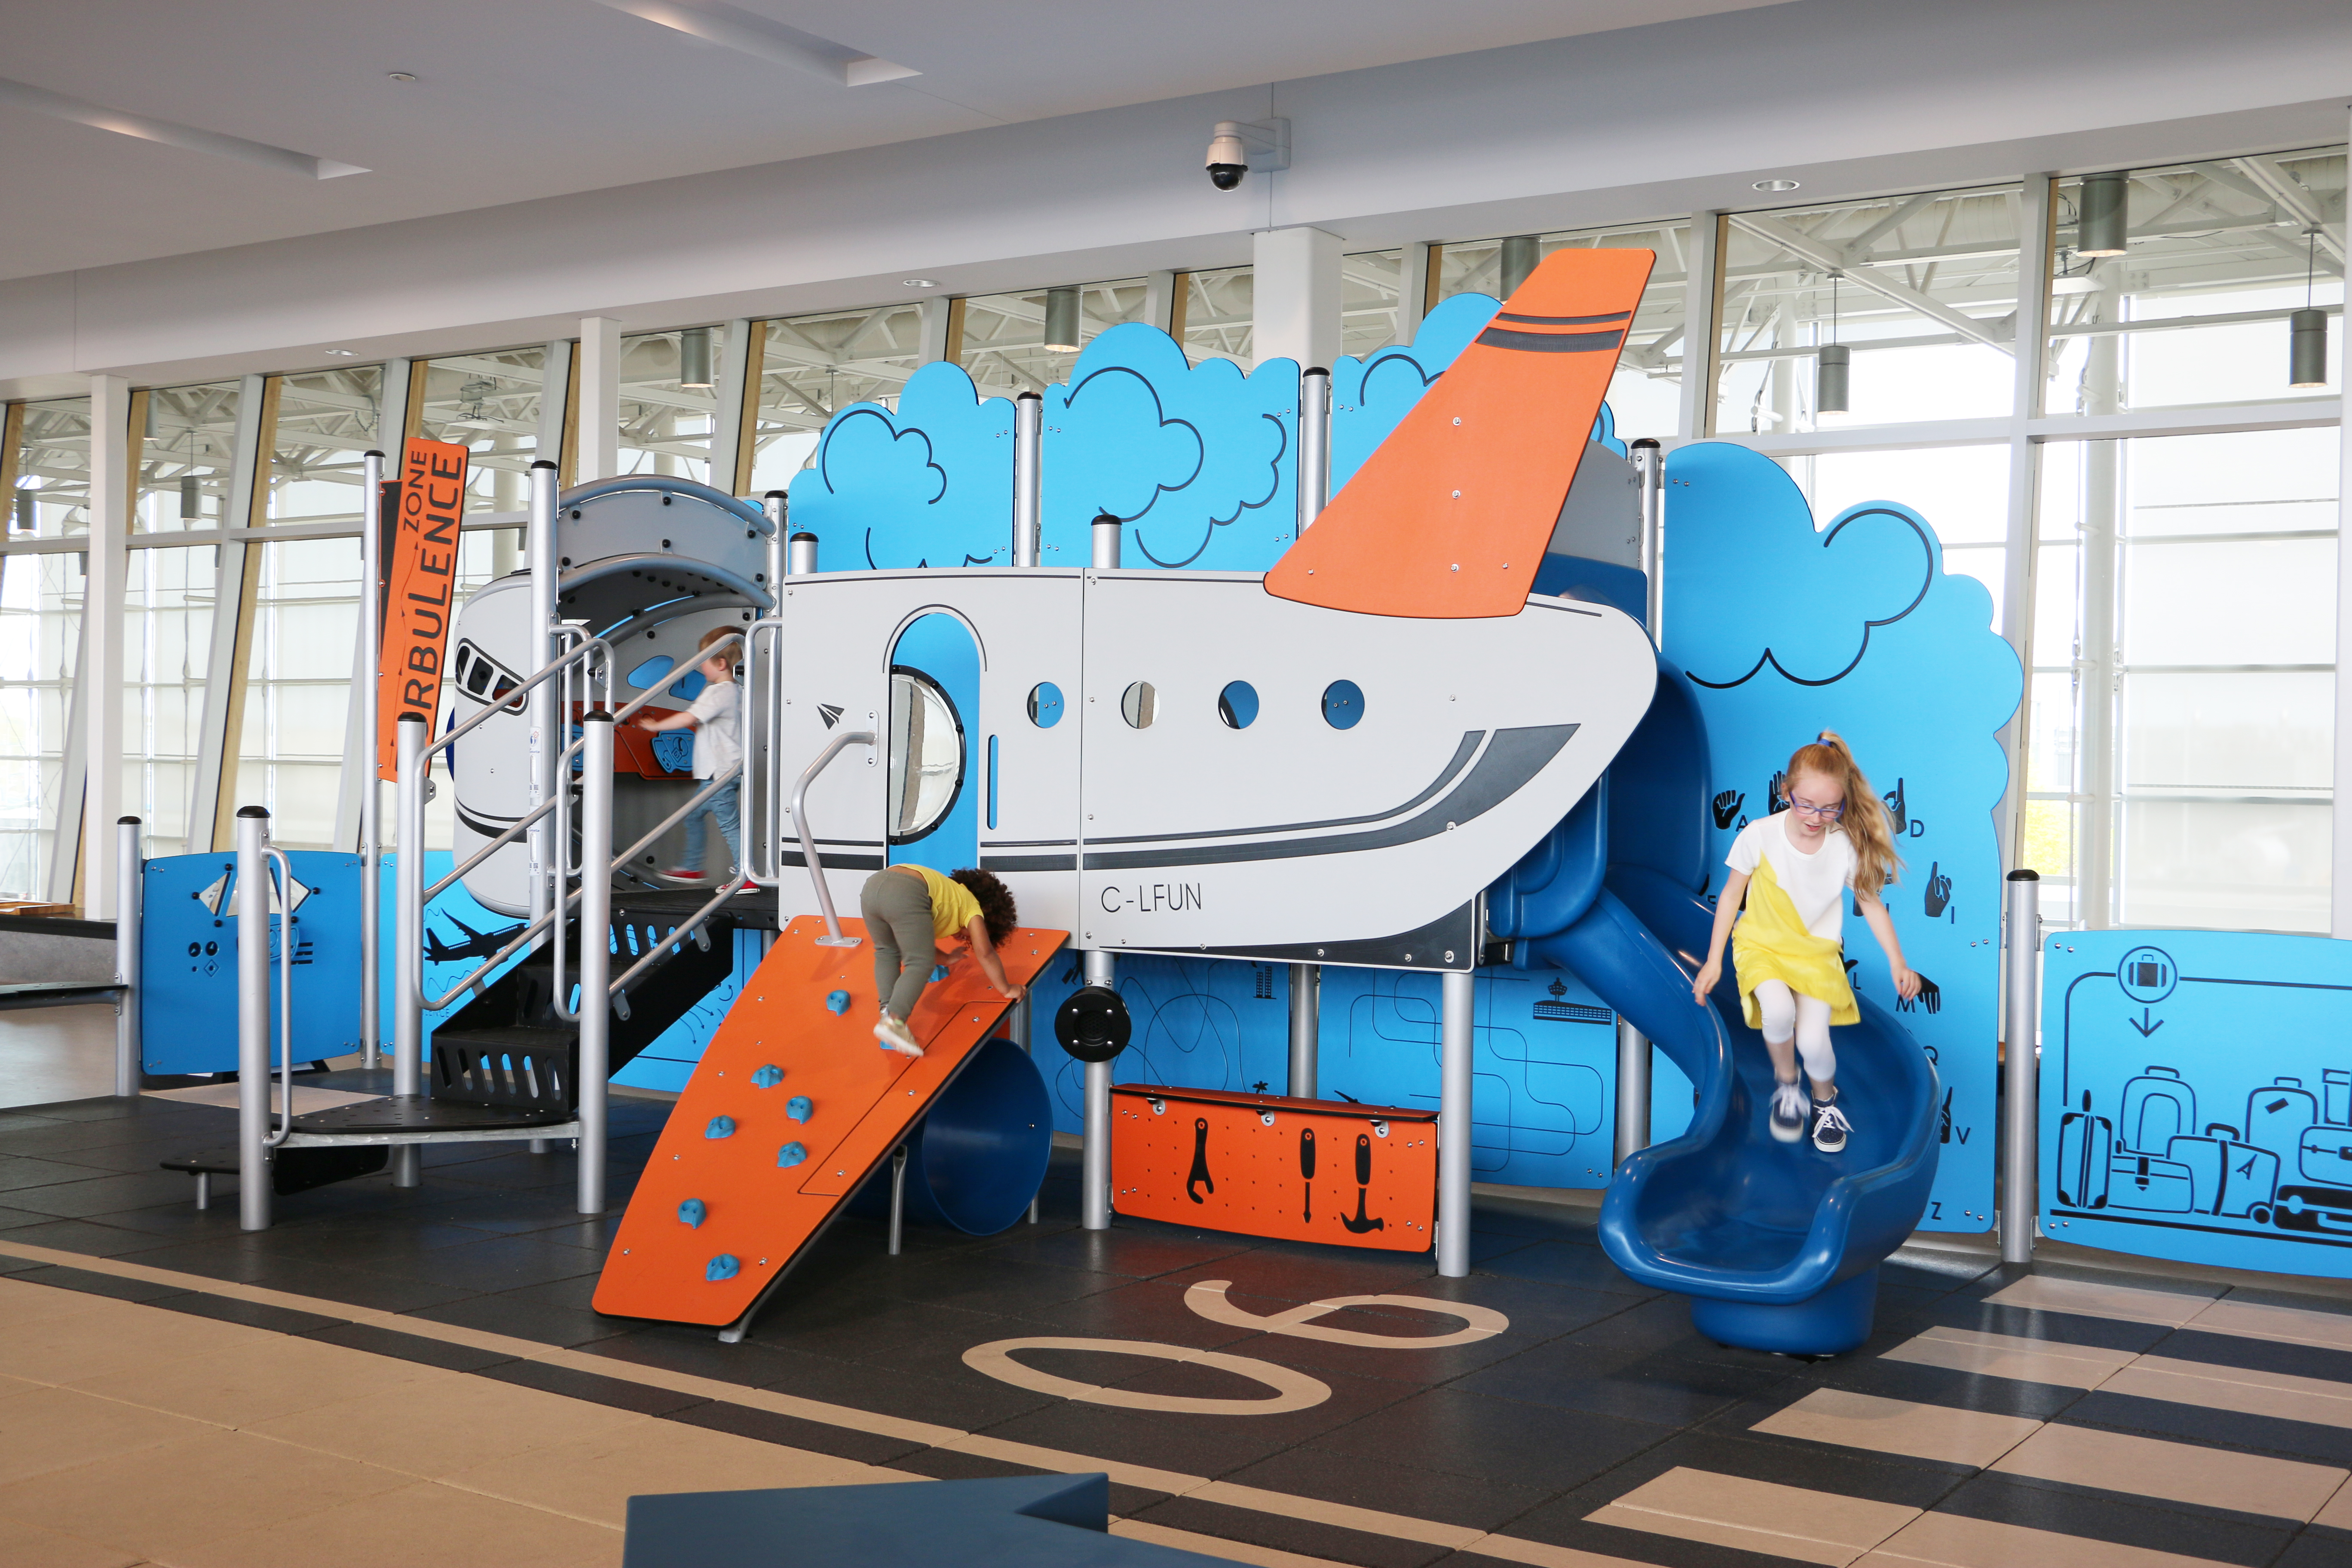 Play area - Turbulence zone